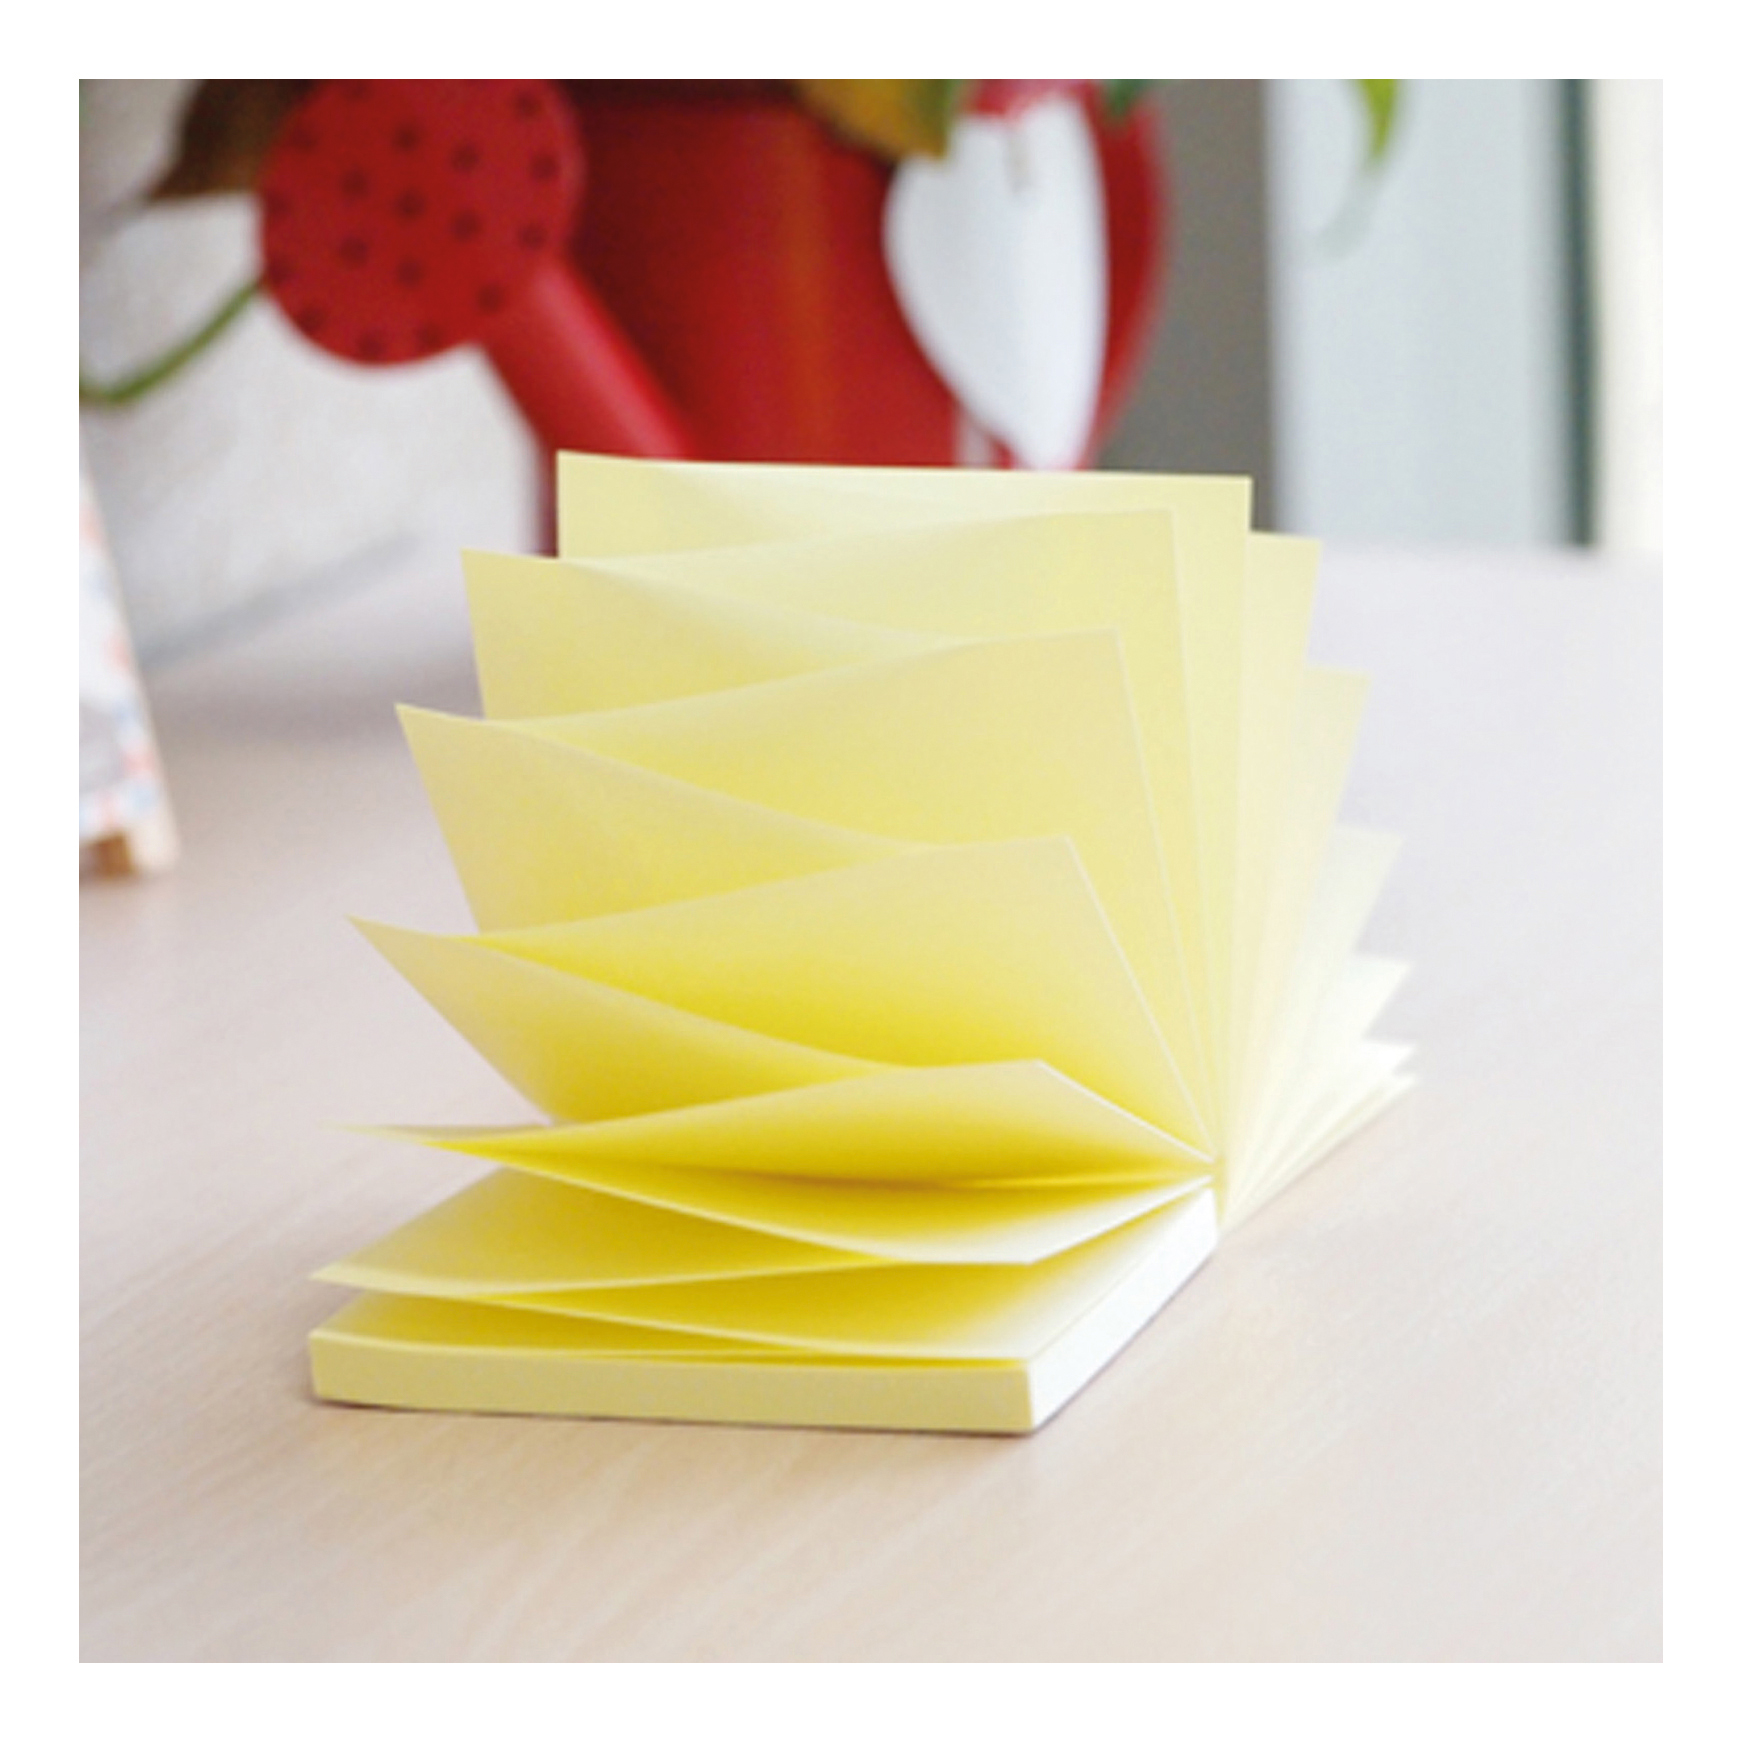 5 Star Office Re-Move Notes Concertina Pad of 100 Sheets 76x76mm Yellow Pack 12